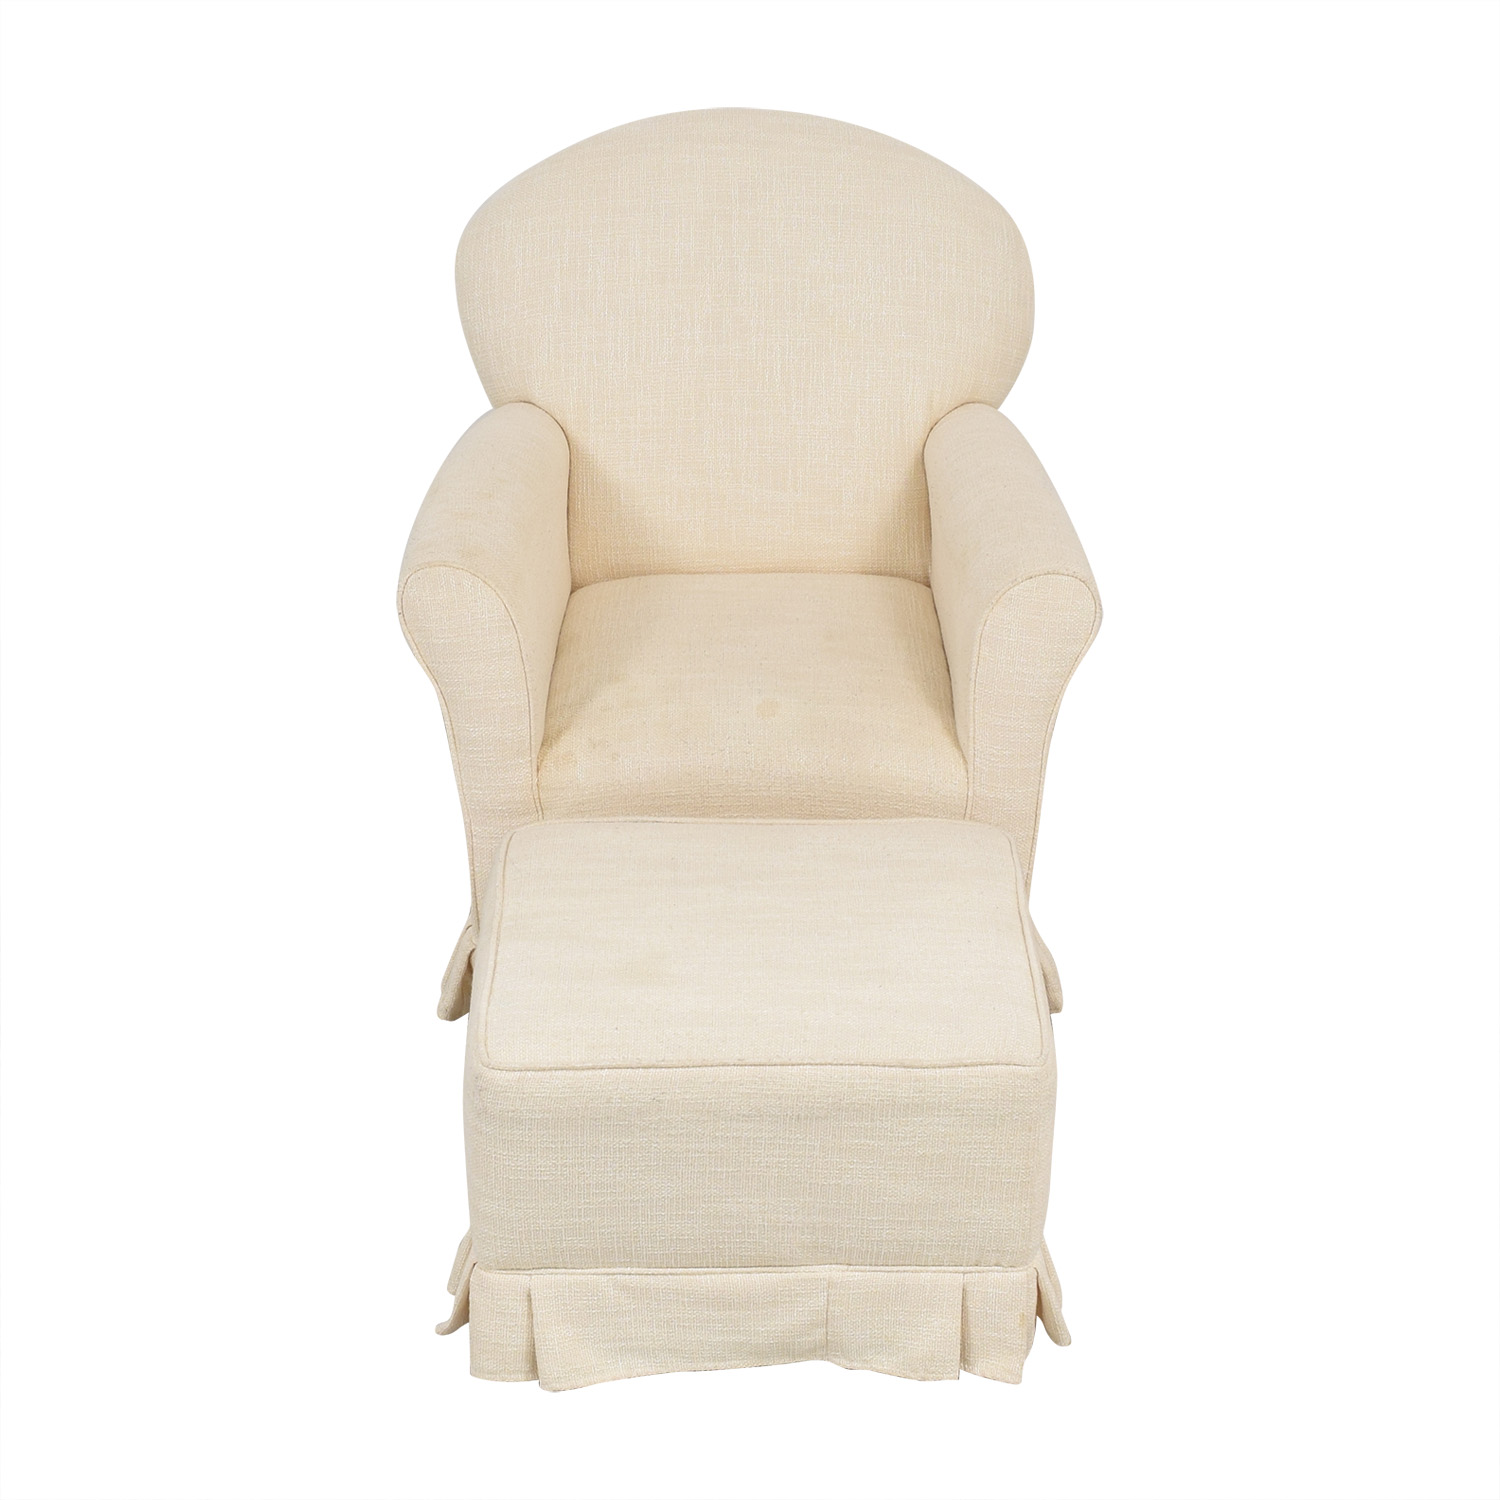 Little Castle Furniture Little Castle Furniture Glider Chair and Ottoman coupon